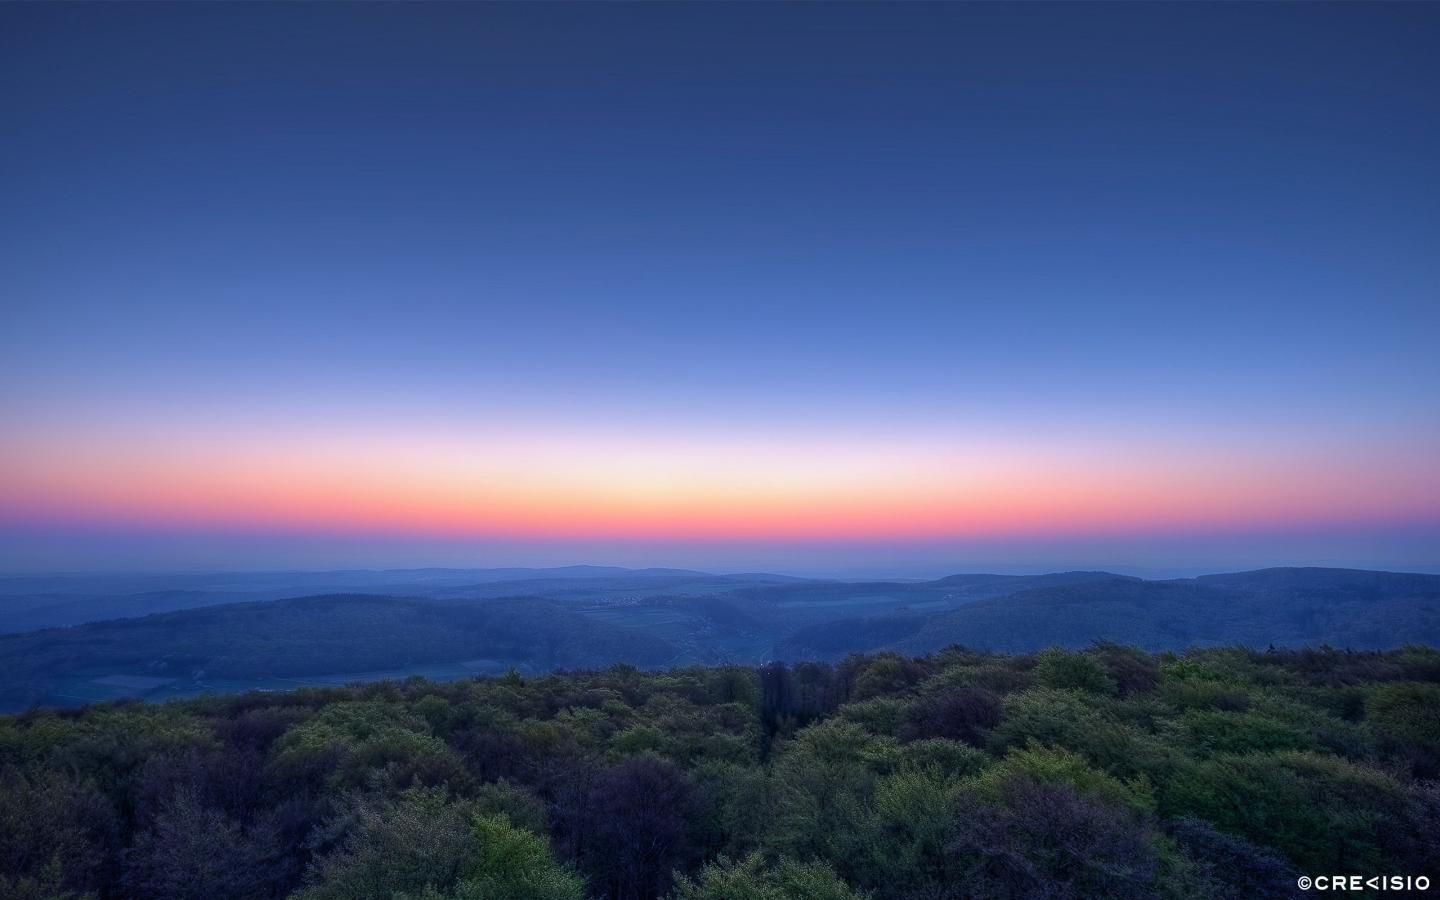 Taunus Twilight by Crevisio